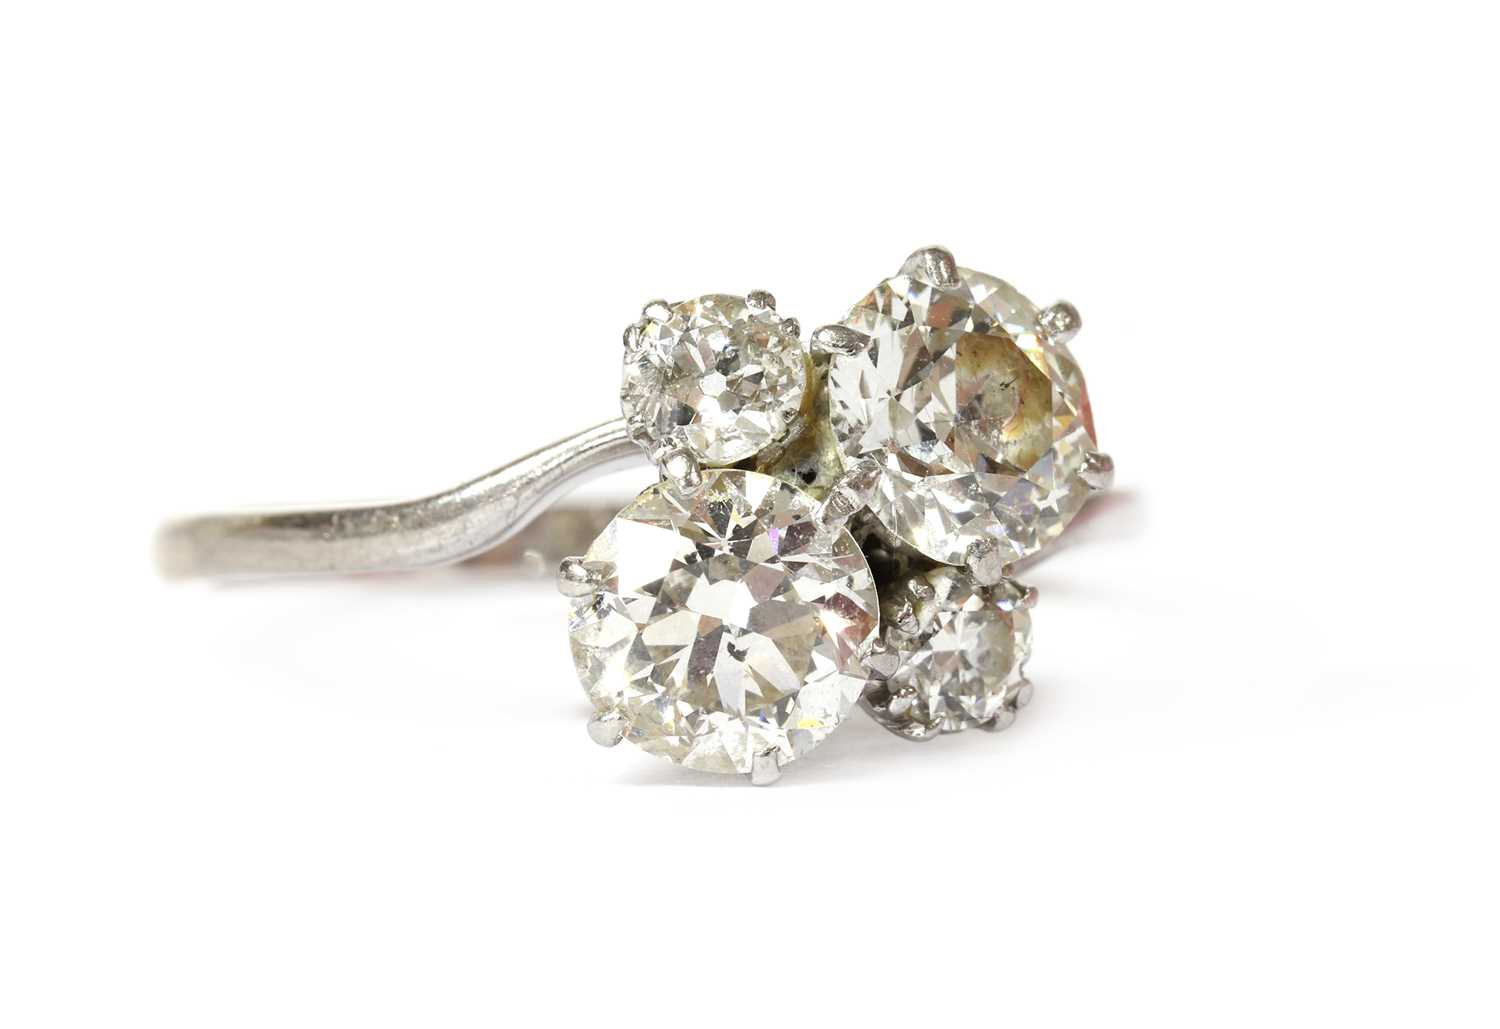 A white gold four stone diamond cluster ring, - Image 2 of 6